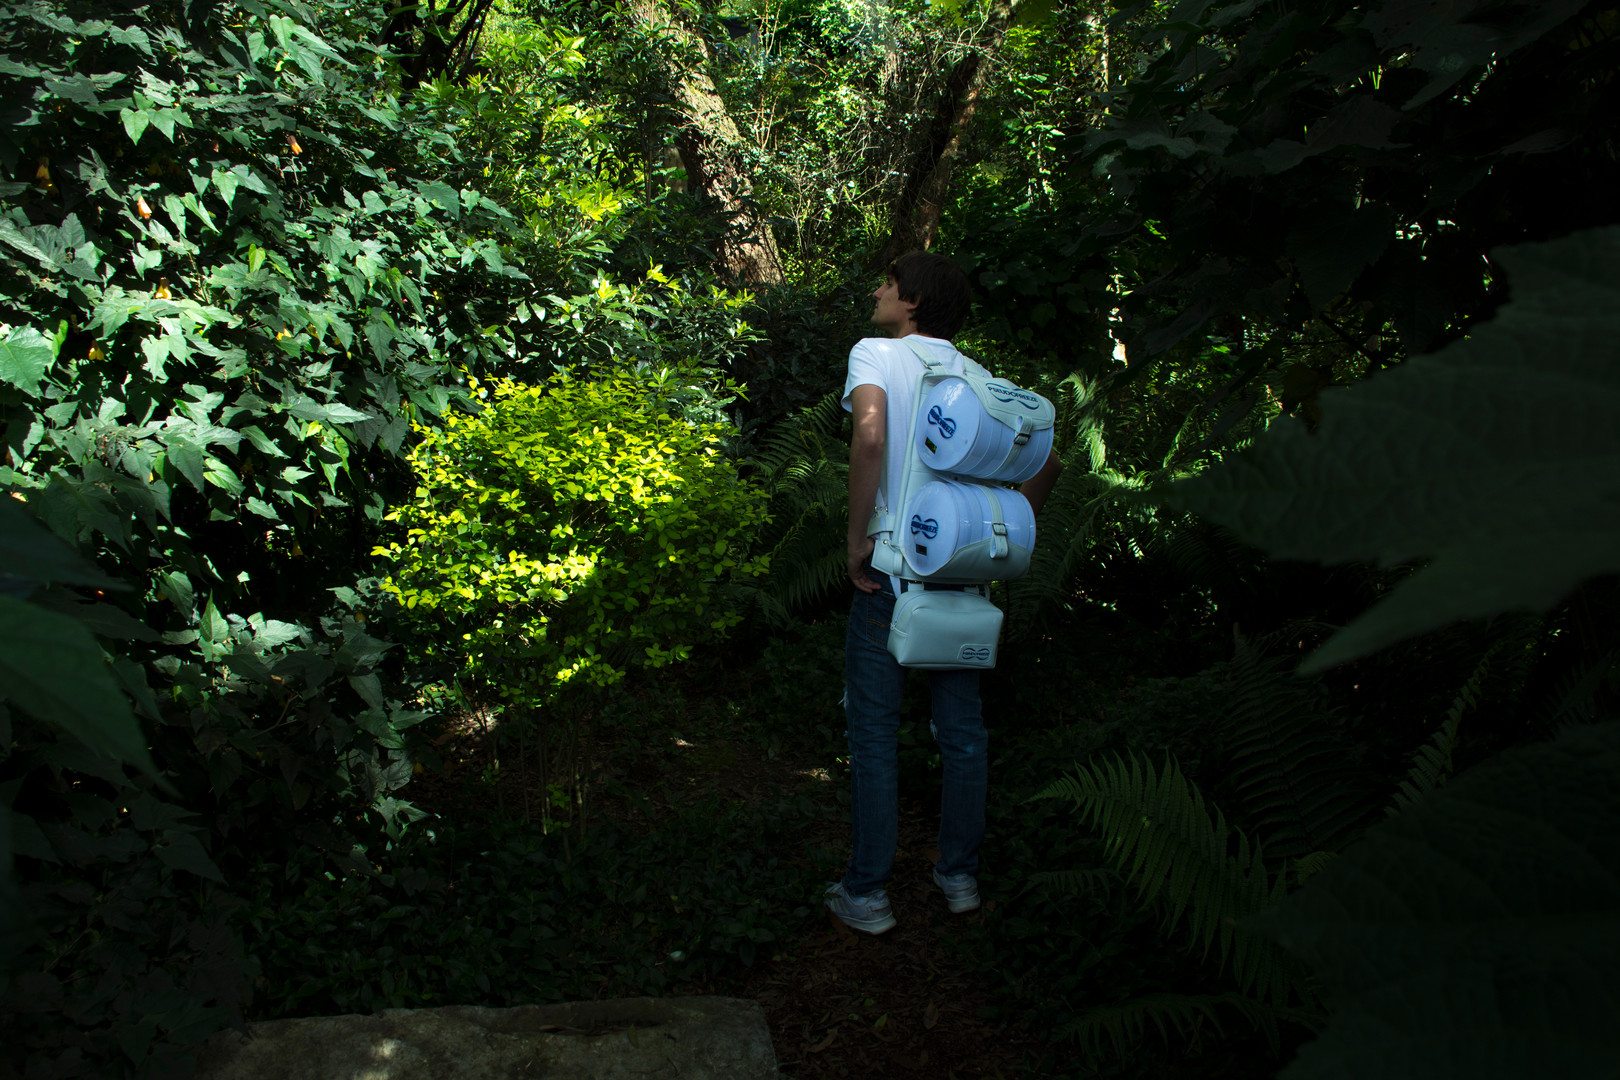 PseudoFreeze backpack to transport vaccines or medicines to rural areas.